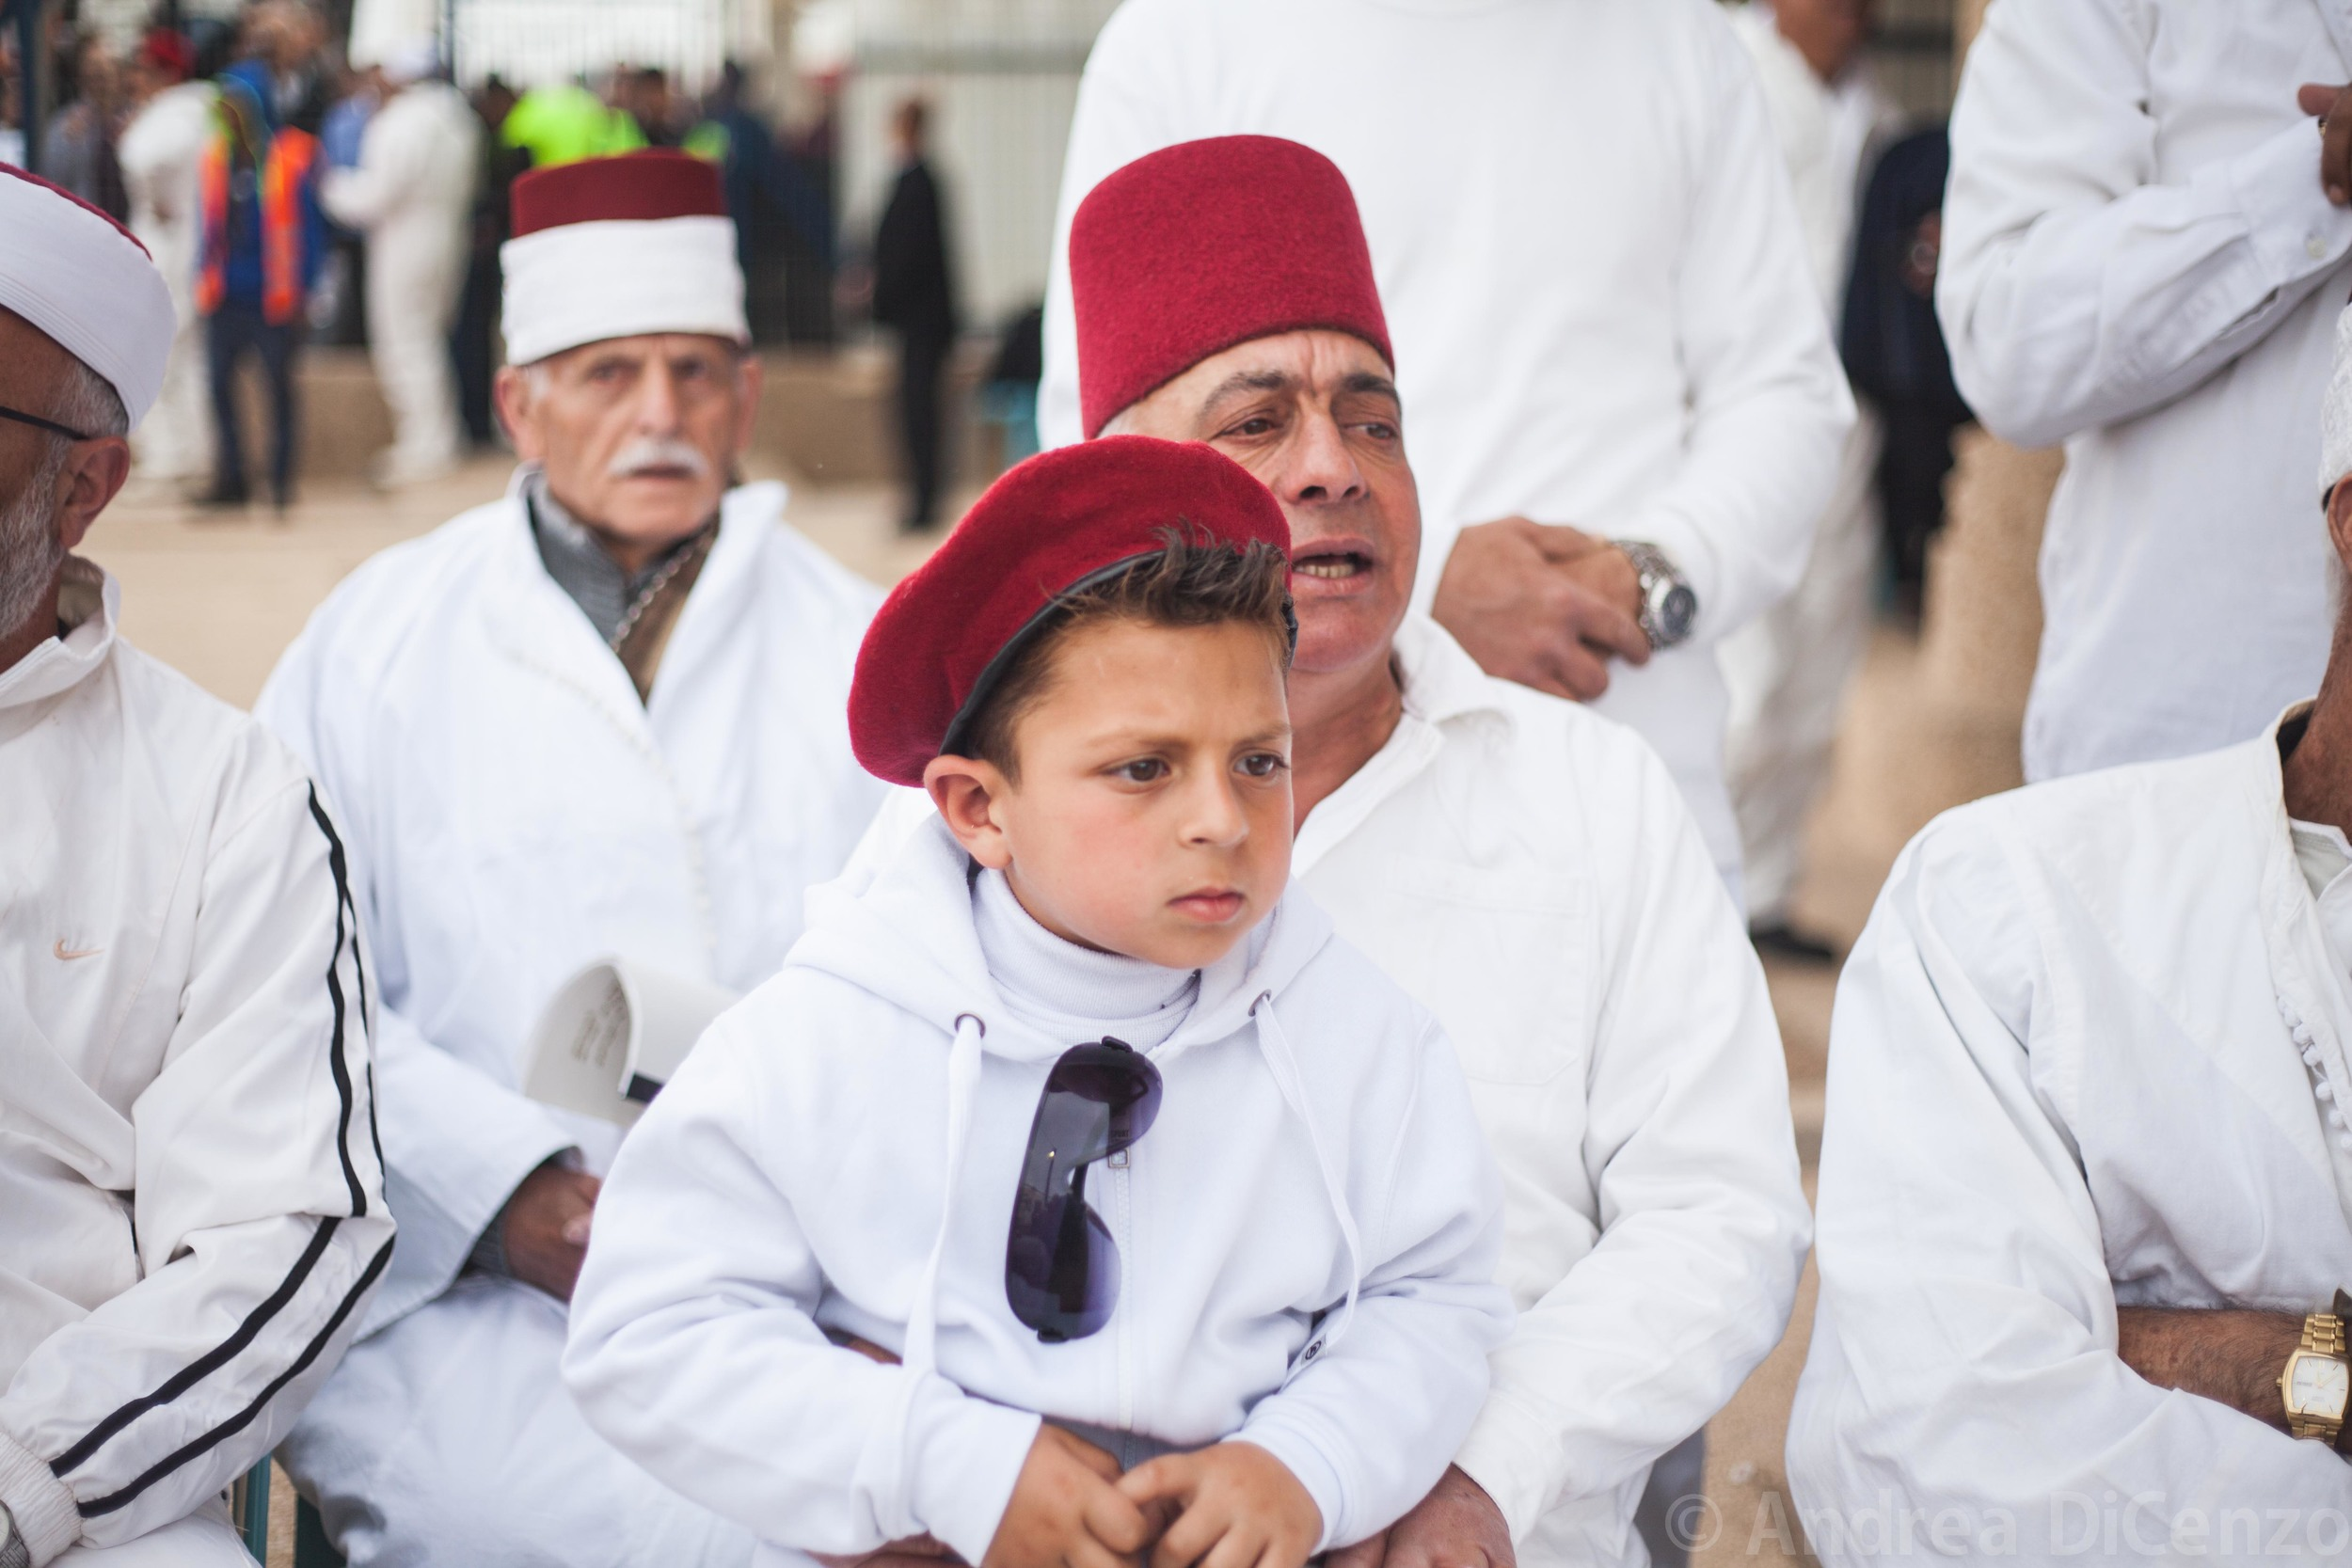 Men chant and wait for their communitiesannual sacrifice to beginonMount Gerizim.Thisancient community of Samaritans is one of the oldest religions in the world consisting of roughly seven hundred people today.